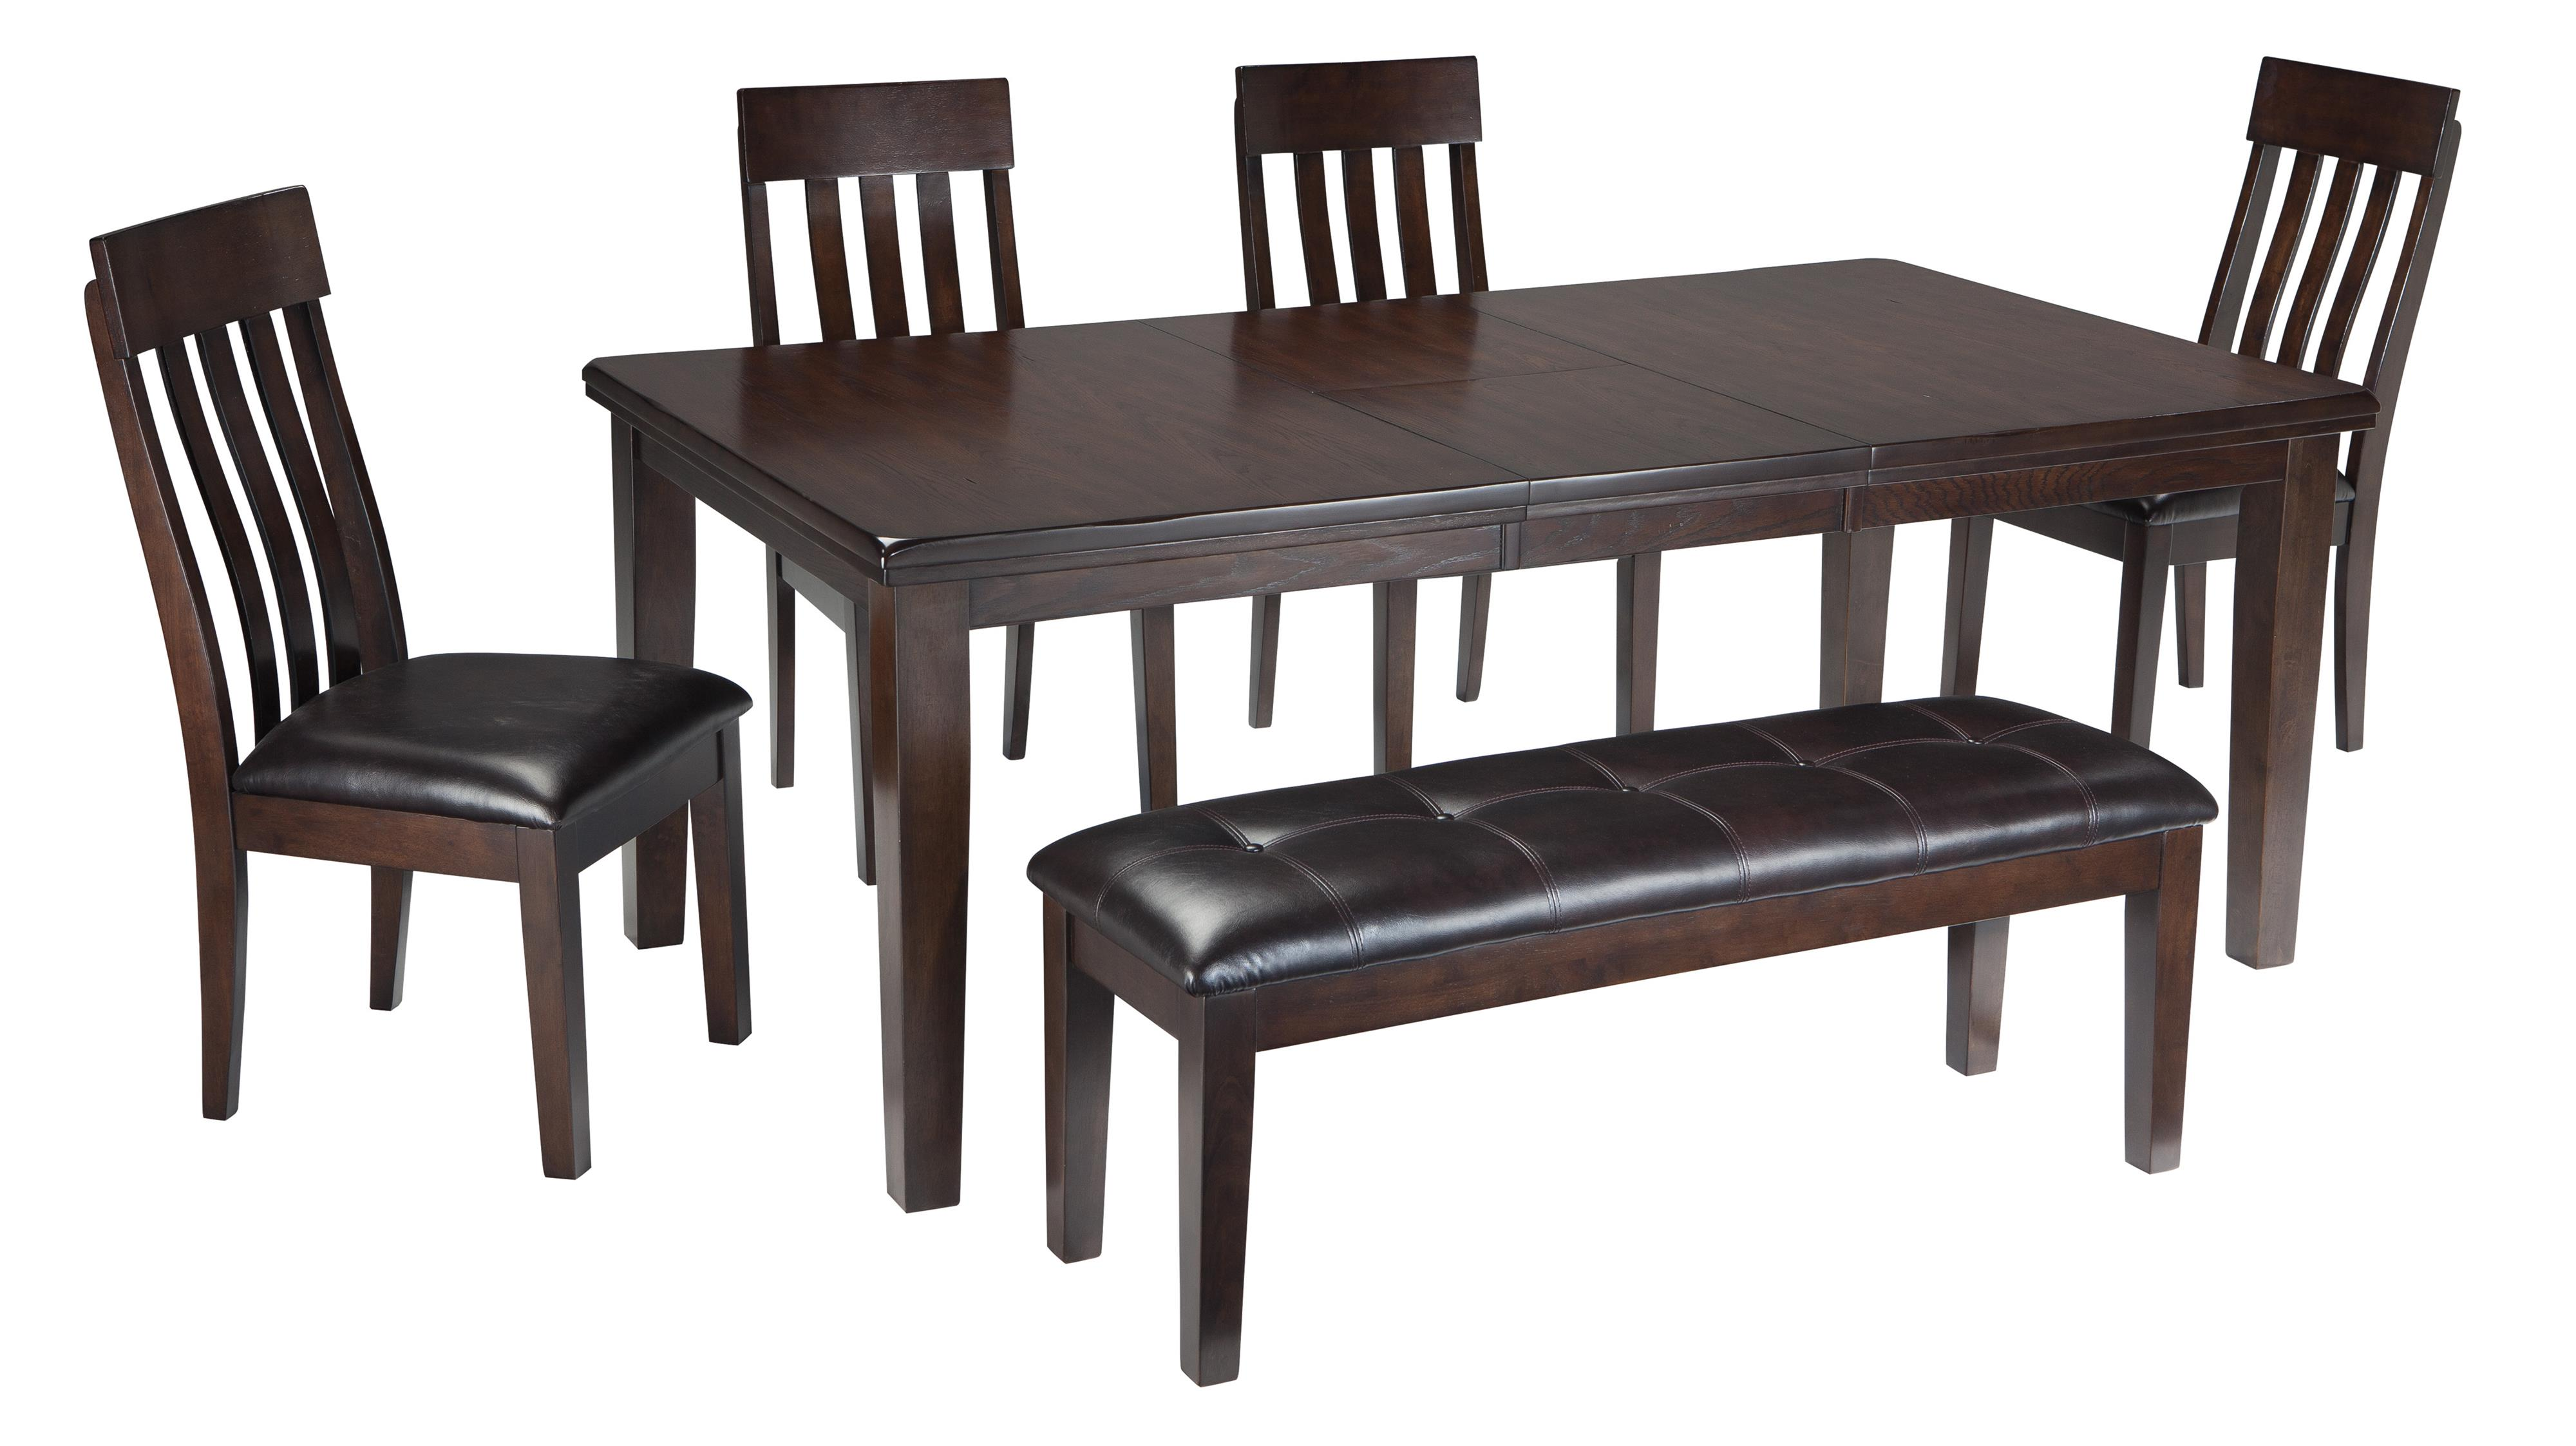 Signature design by ashley haddigan 6 piece rectangular for Table and bench set